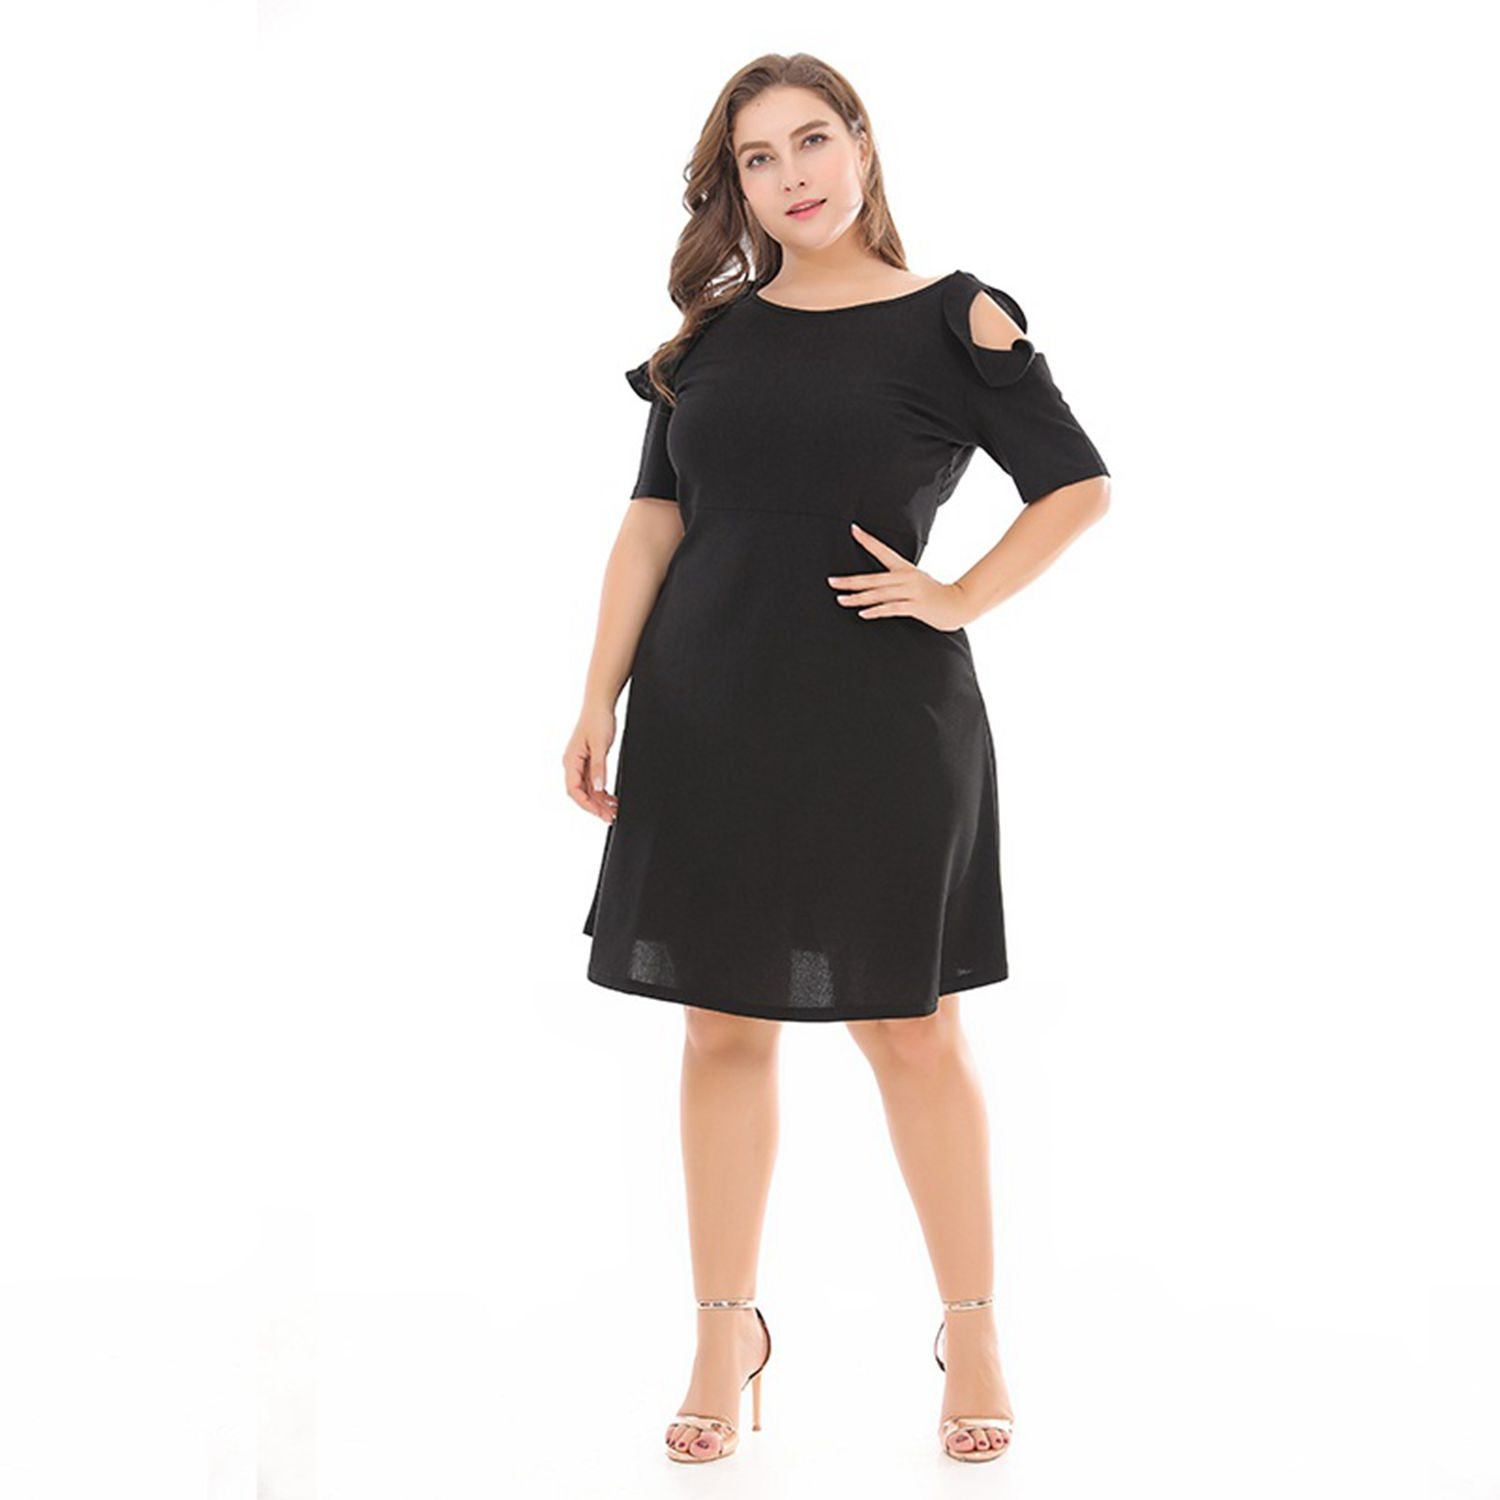 2018 New Fashion Hot Thin Clothing Short Casual Dress -4028